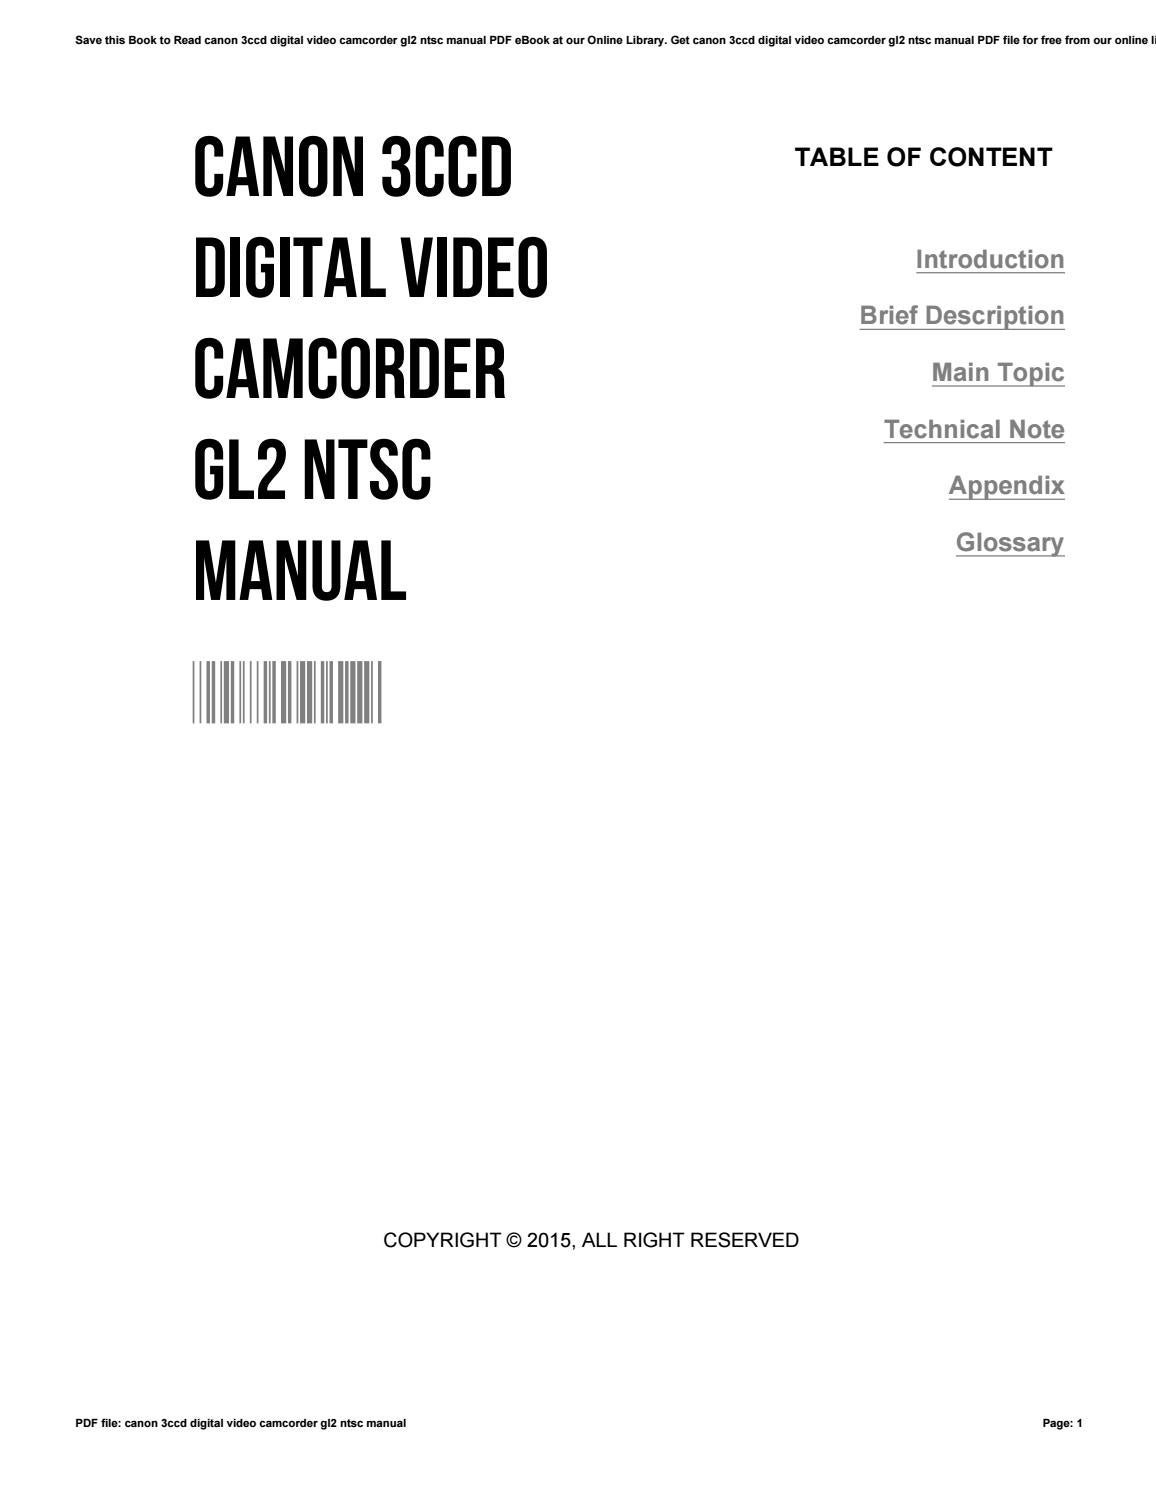 Canon gl2 user manual canon hv30 edit array canon 3ccd digital video camcorder gl2 ntsc manual by smallker66 issuu rh issuu fandeluxe Choice Image